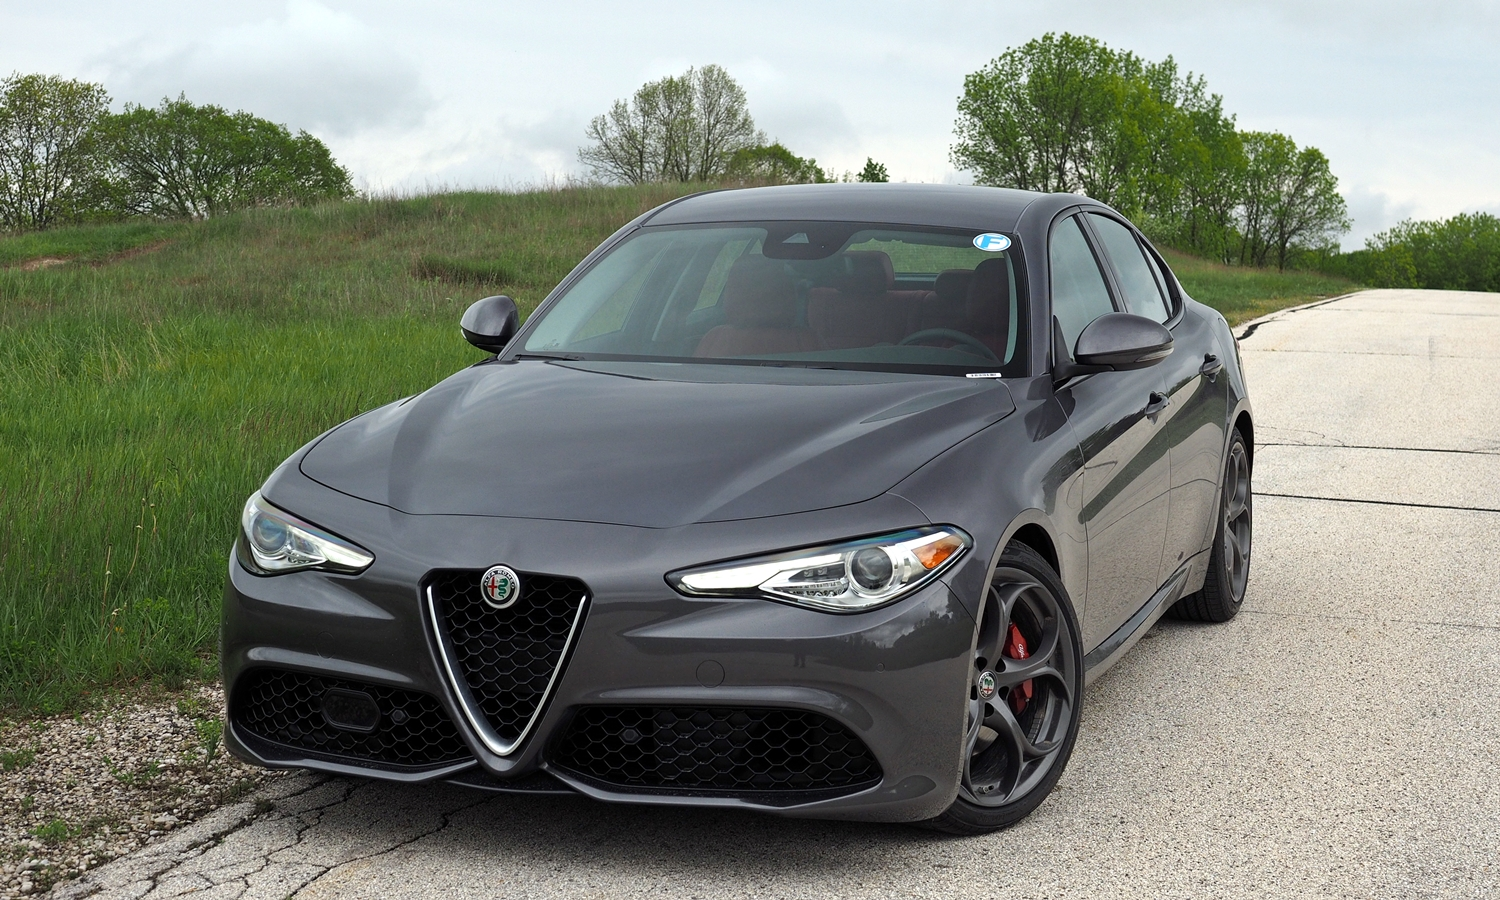 2017 alfa romeo giulia photos truedelta car reviews. Black Bedroom Furniture Sets. Home Design Ideas